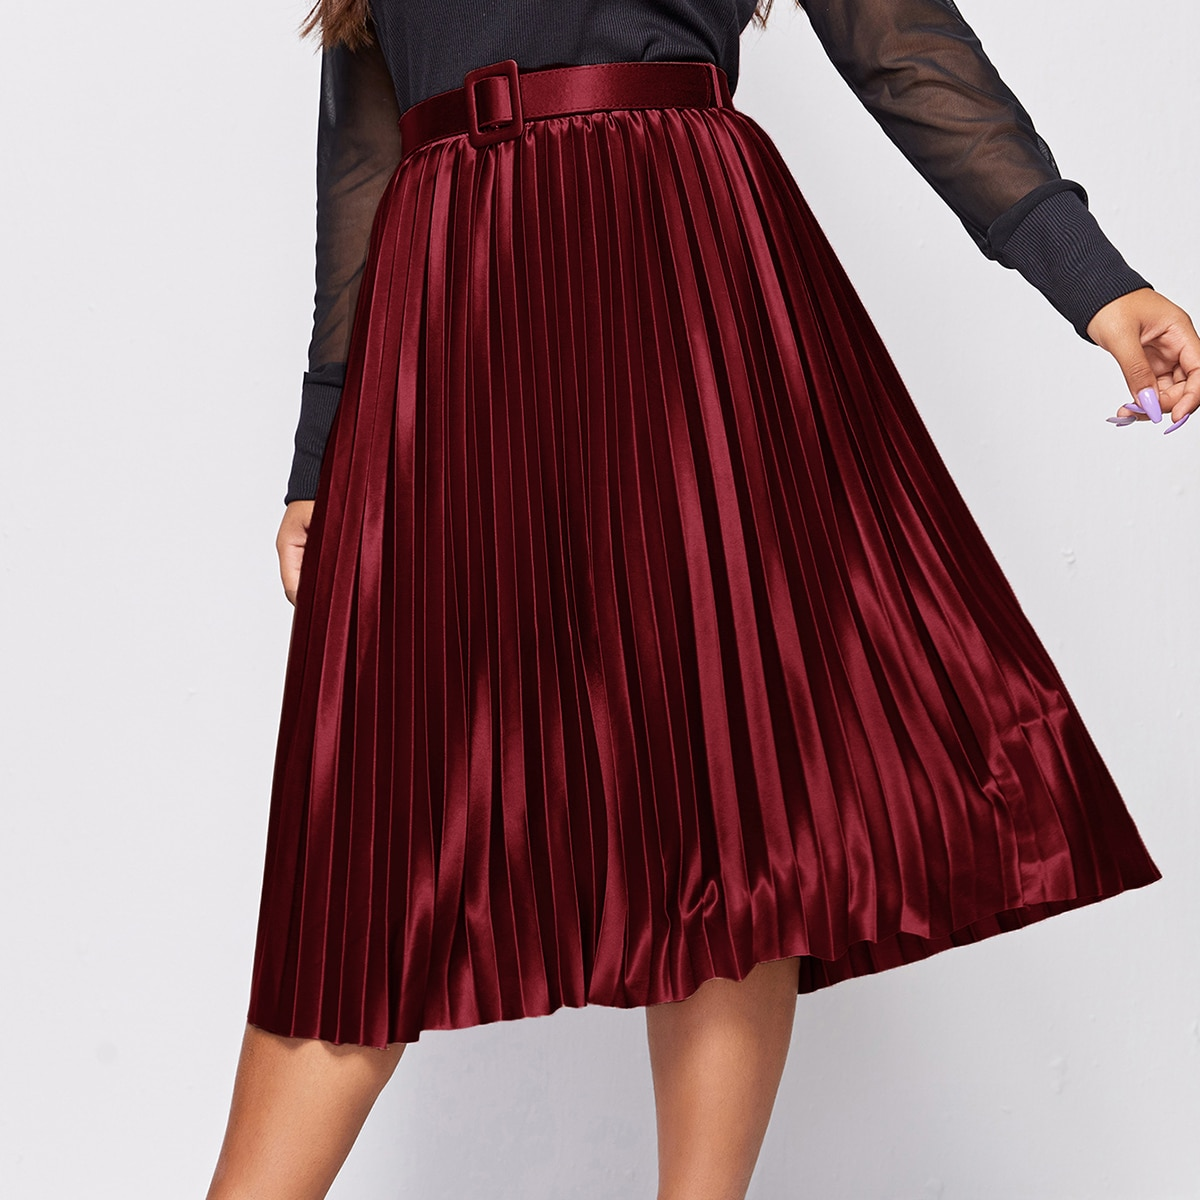 SHEIN / Plus Satin Belted Pleated Skirt